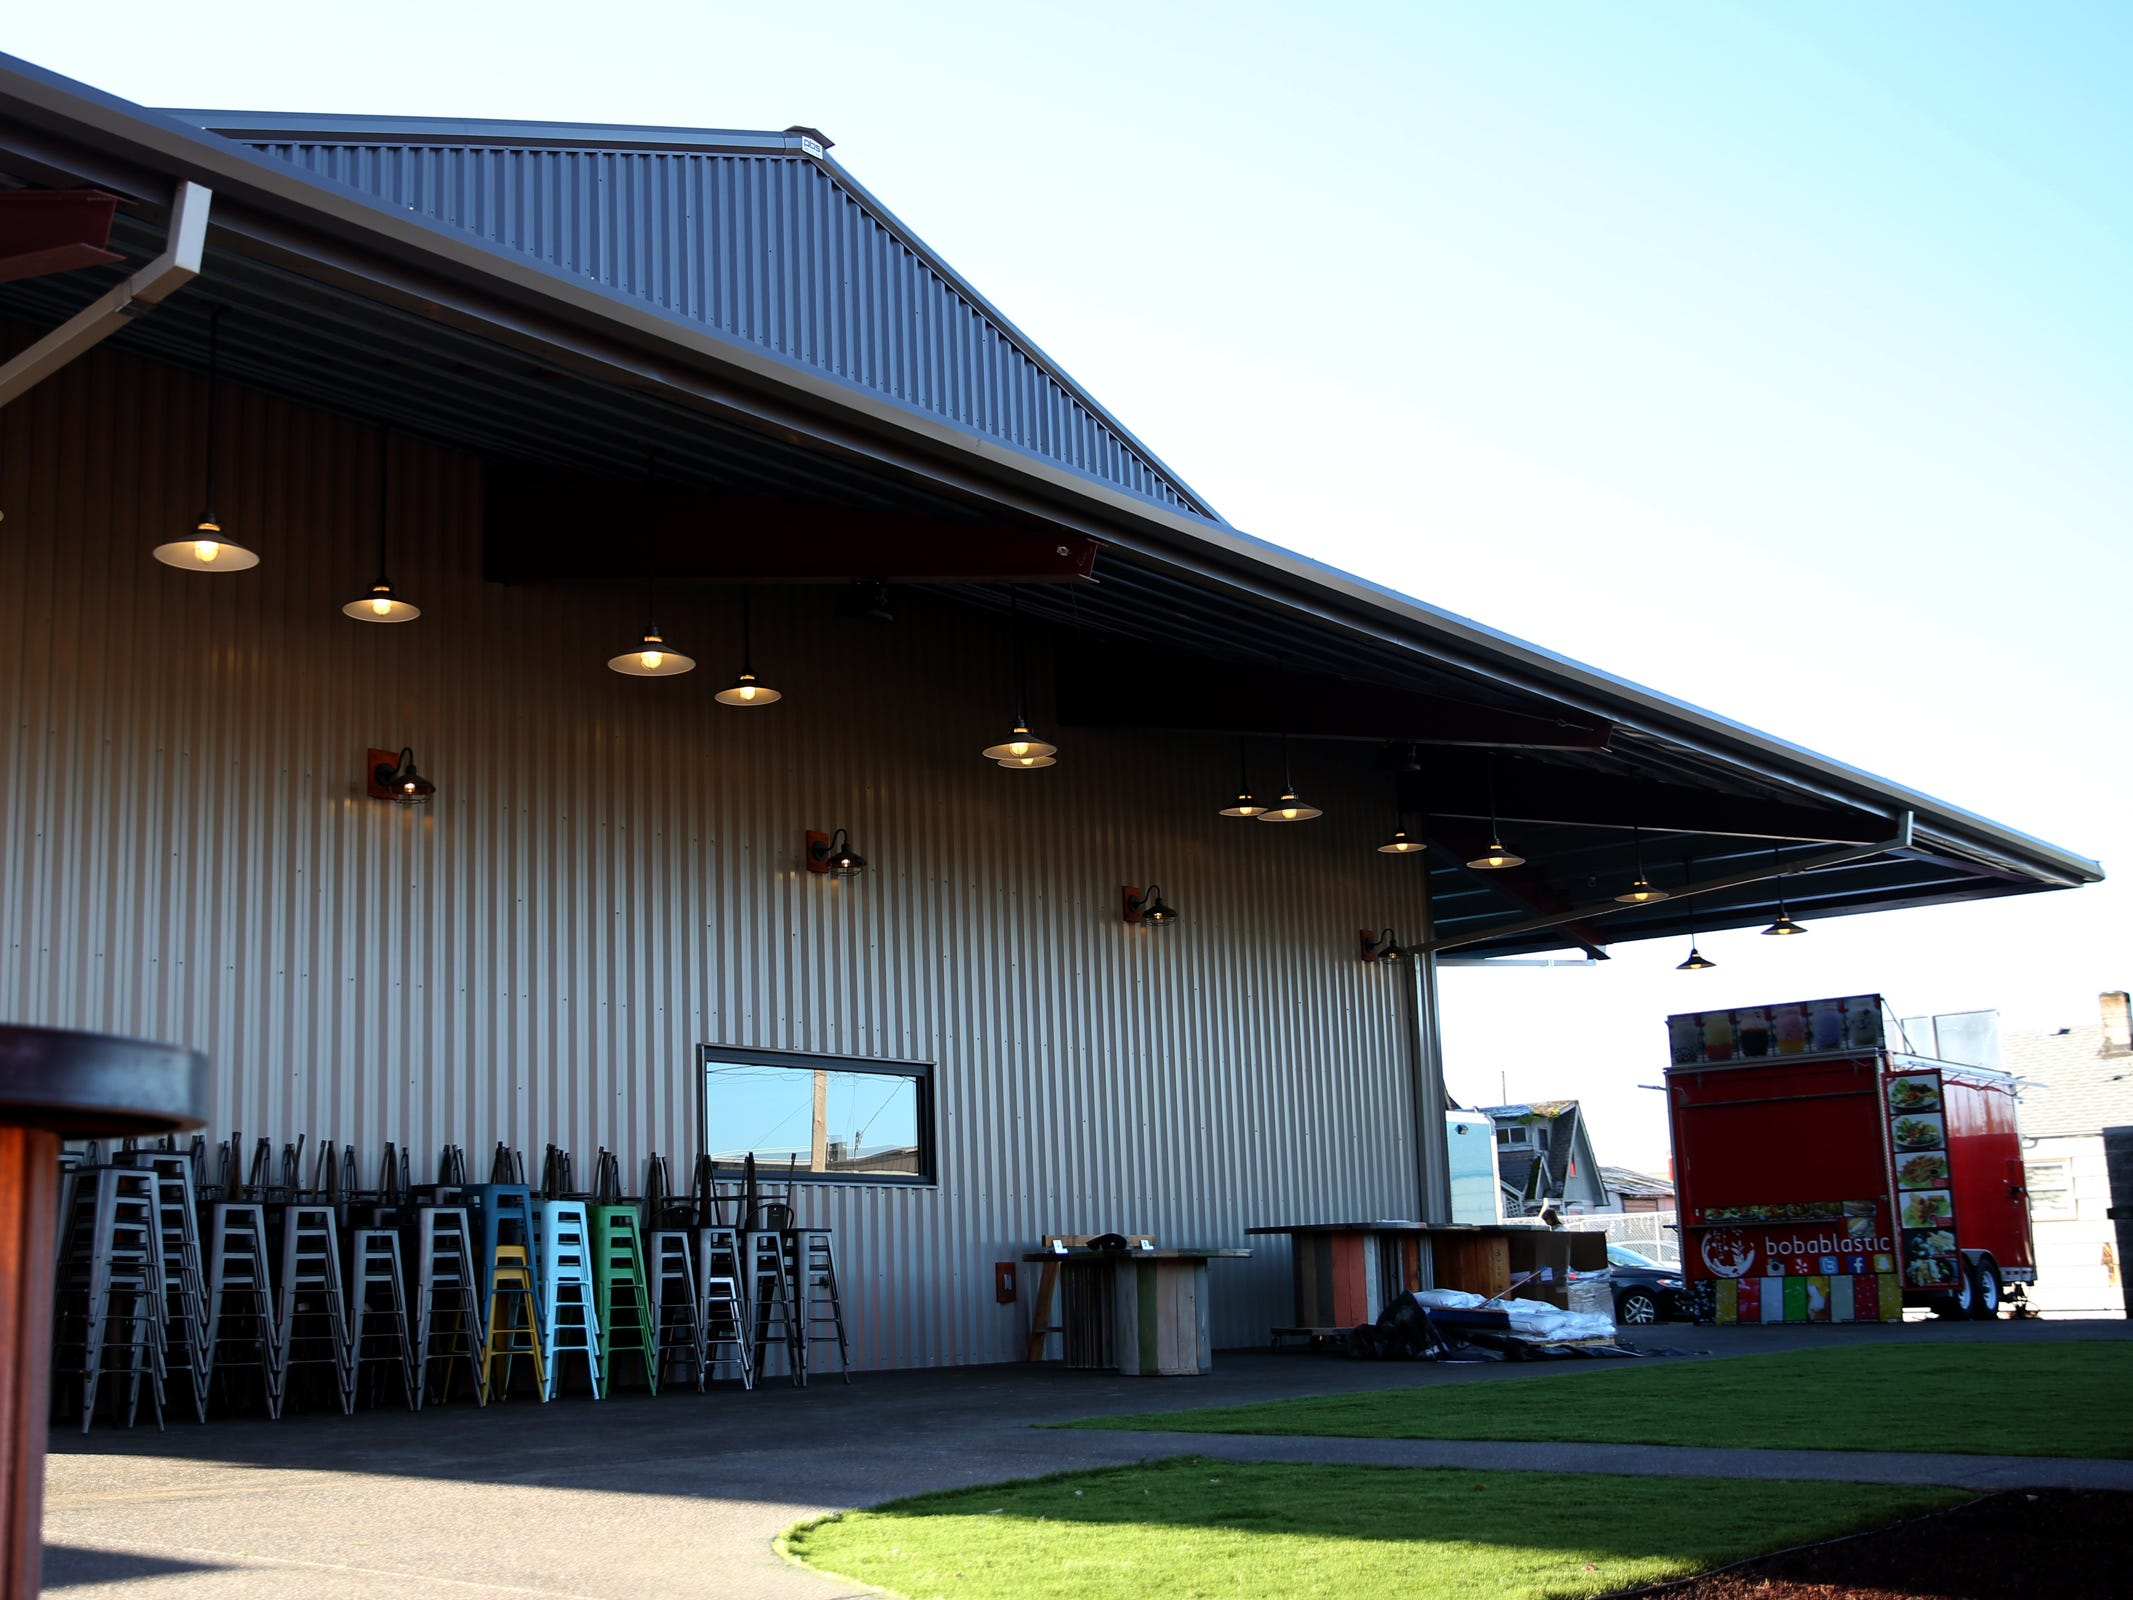 An outdoor seating and yard game area at The Yard Food Park in Salem on Wednesday, Dec. 5, 2018. When it opens, The Yard will essentially be part coffee shop, part bar, part event space, and part food truck food court.